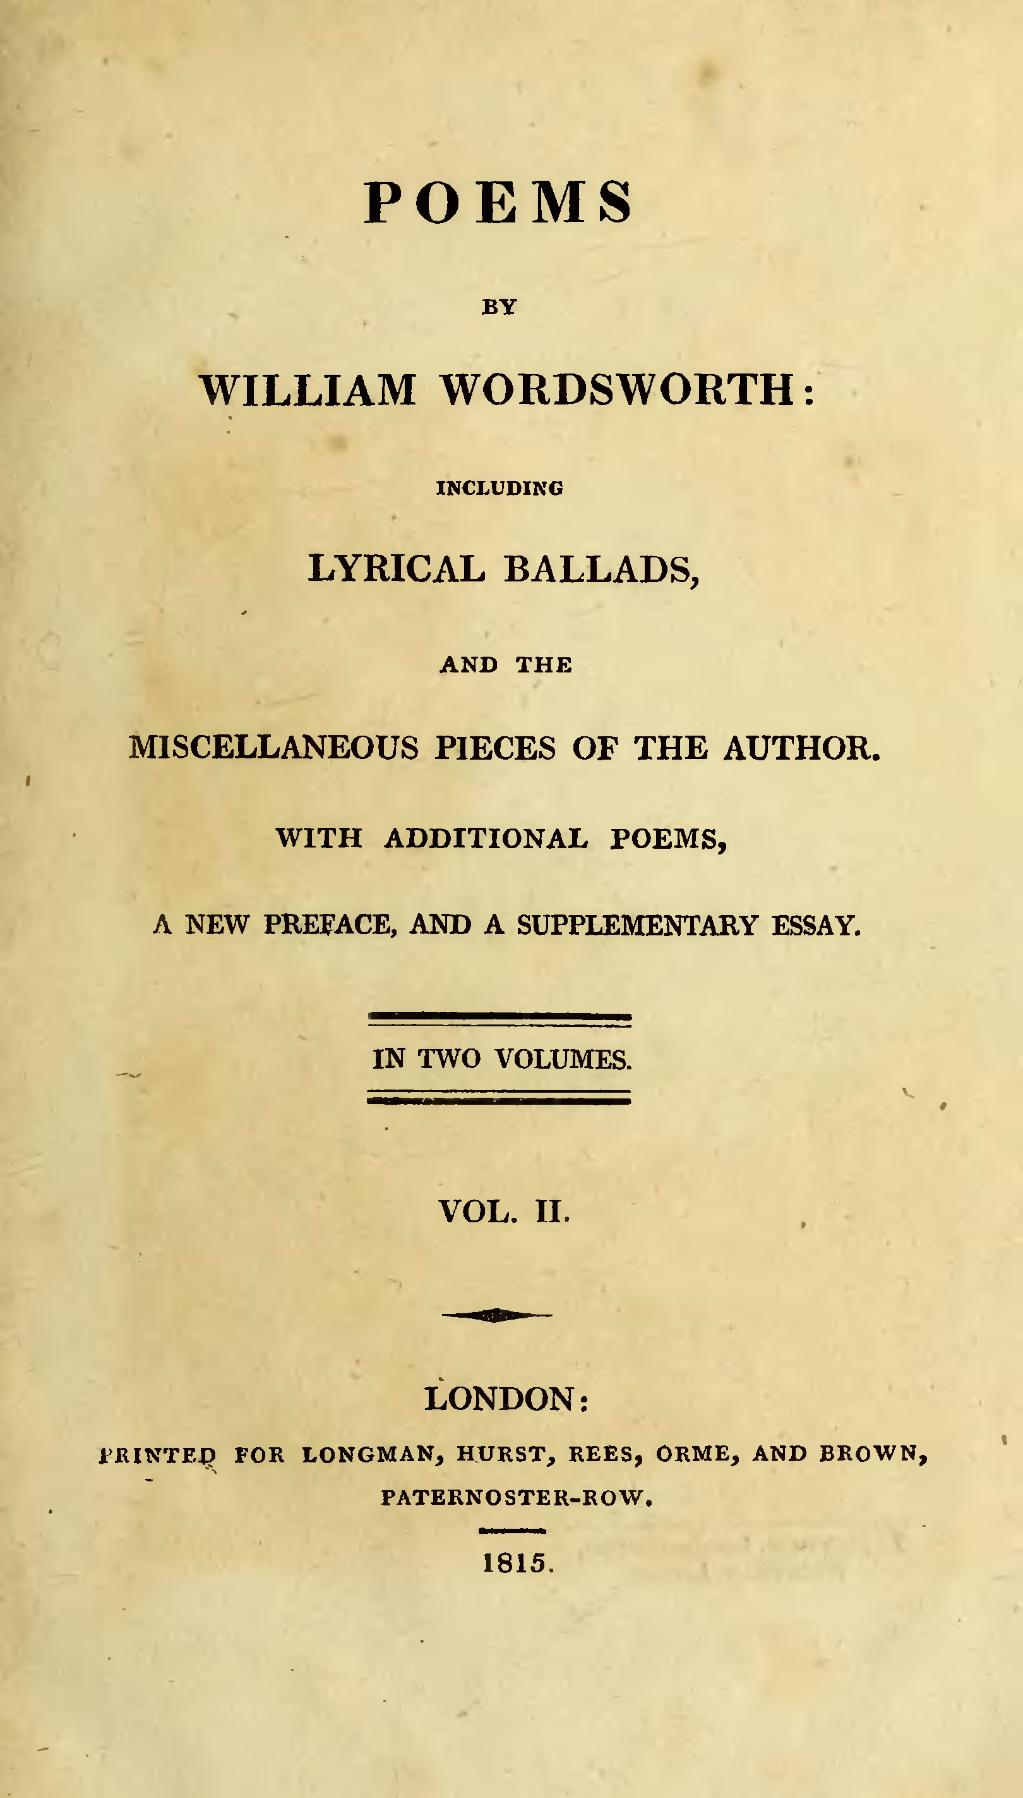 page poems by william wordsworth volume djvu  page poems by william wordsworth 1815 volume 2 djvu 7 wikisource the online library